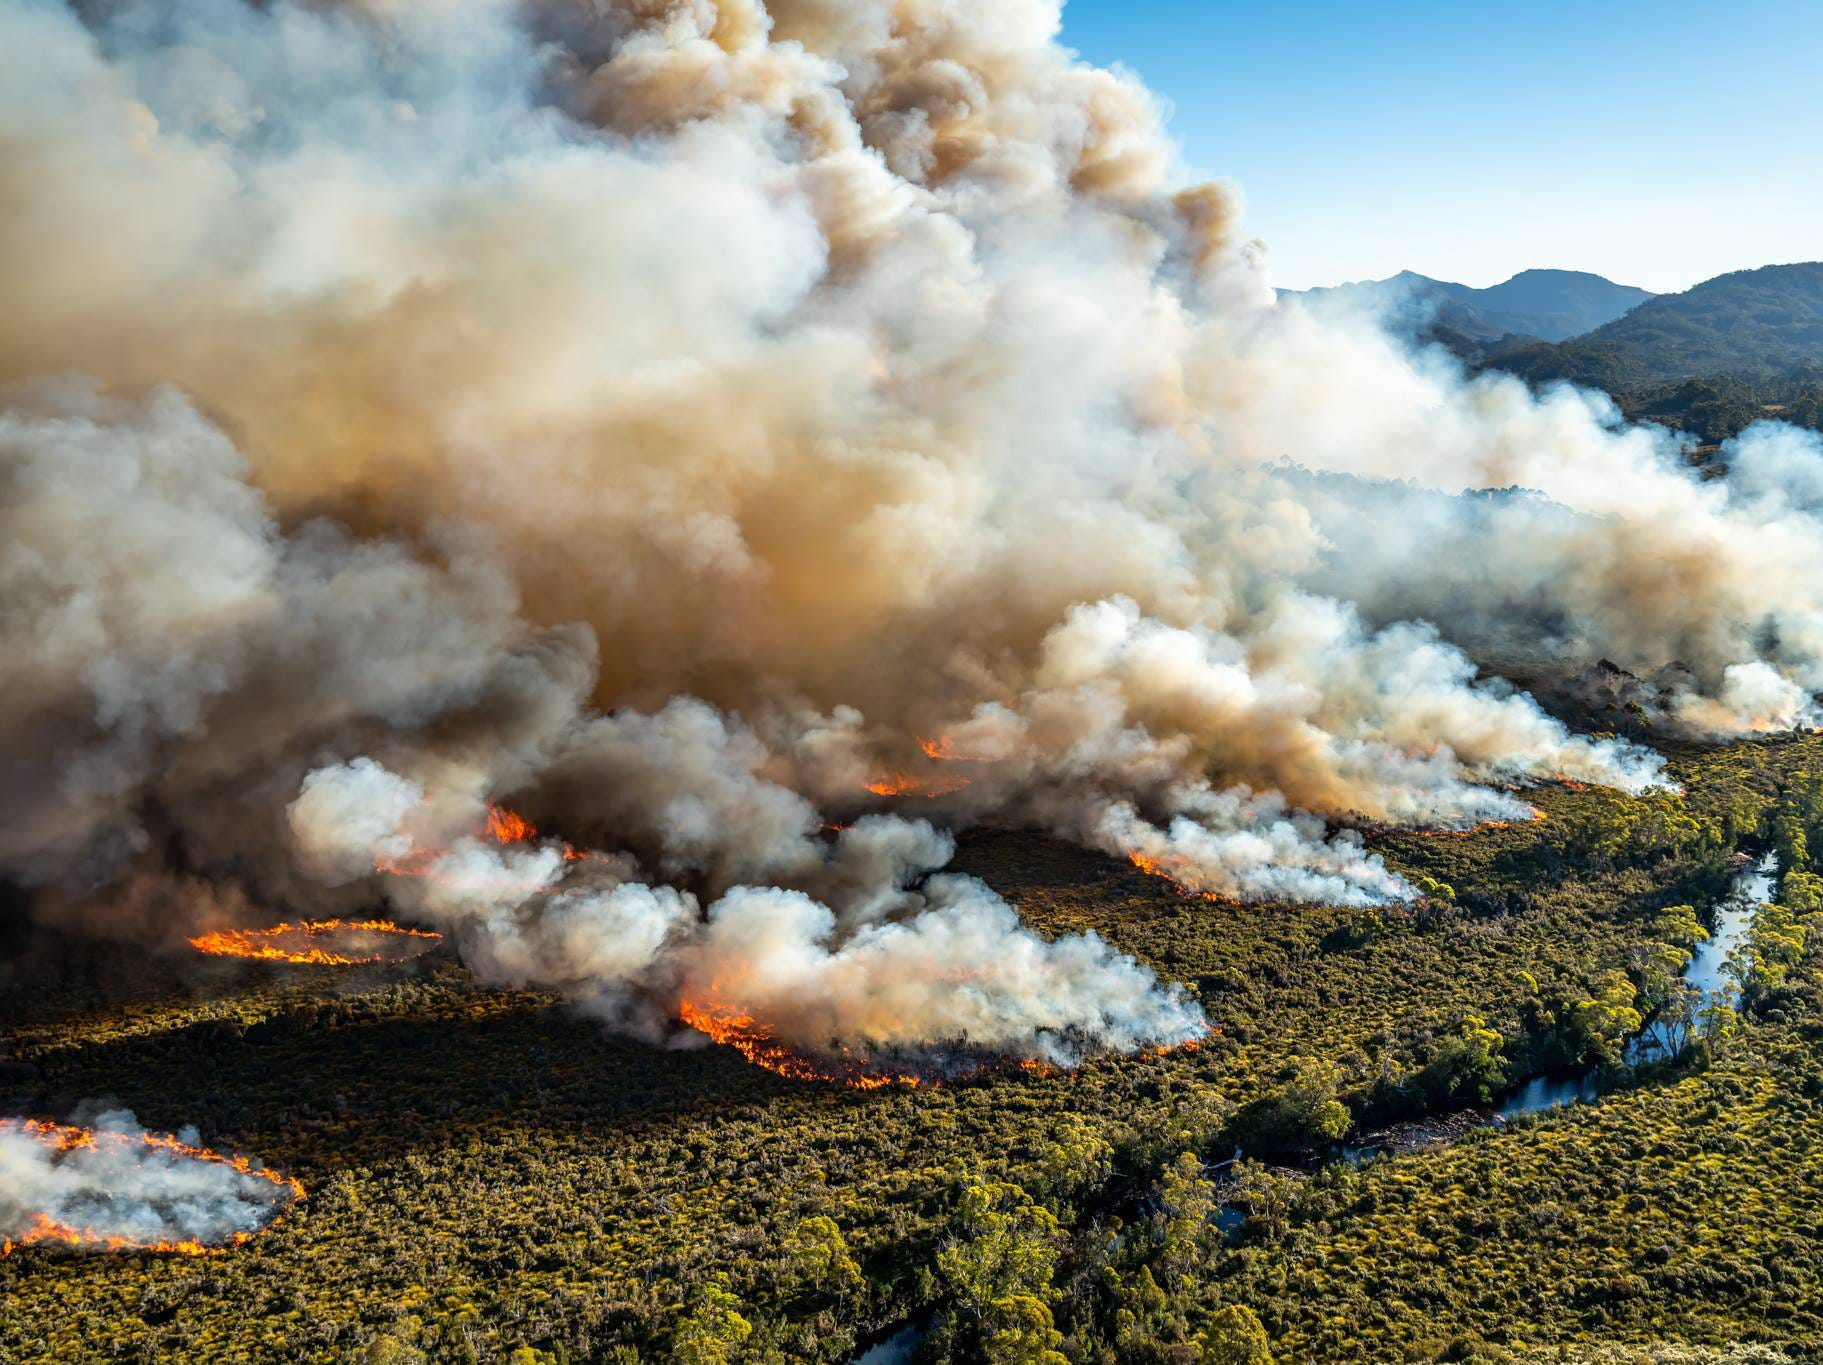 An undated handout photo made available by the Tasmania Parks and Wildlife Service on Jan. 23, 2019 shows an aerial view of a large bushfire burning in Tasmania, Australia. Some 55,0000 hectares of wilderness and bushland across the state has been ravaged by scores of fires, at least one of which has been burning since late December.